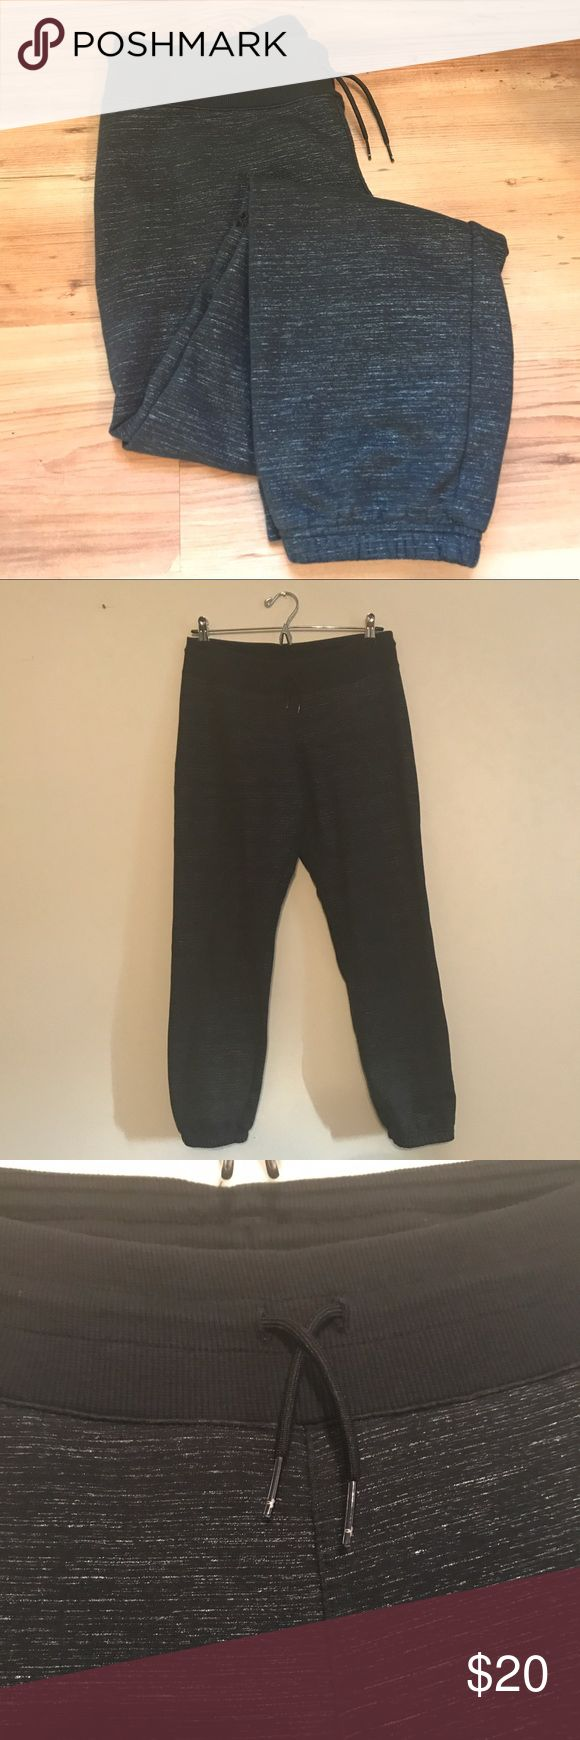 Under Armour Storm Jogger Sweatpants - Size Medium Great used condition! These are a lightweight sweatpants material- thin but still warm! The interior tag fell off while washing, but it is a women's size medium. There is some variation of the pattern at the knees of the pants, please see the last photo. Under Armour Pants Track Pants & Joggers